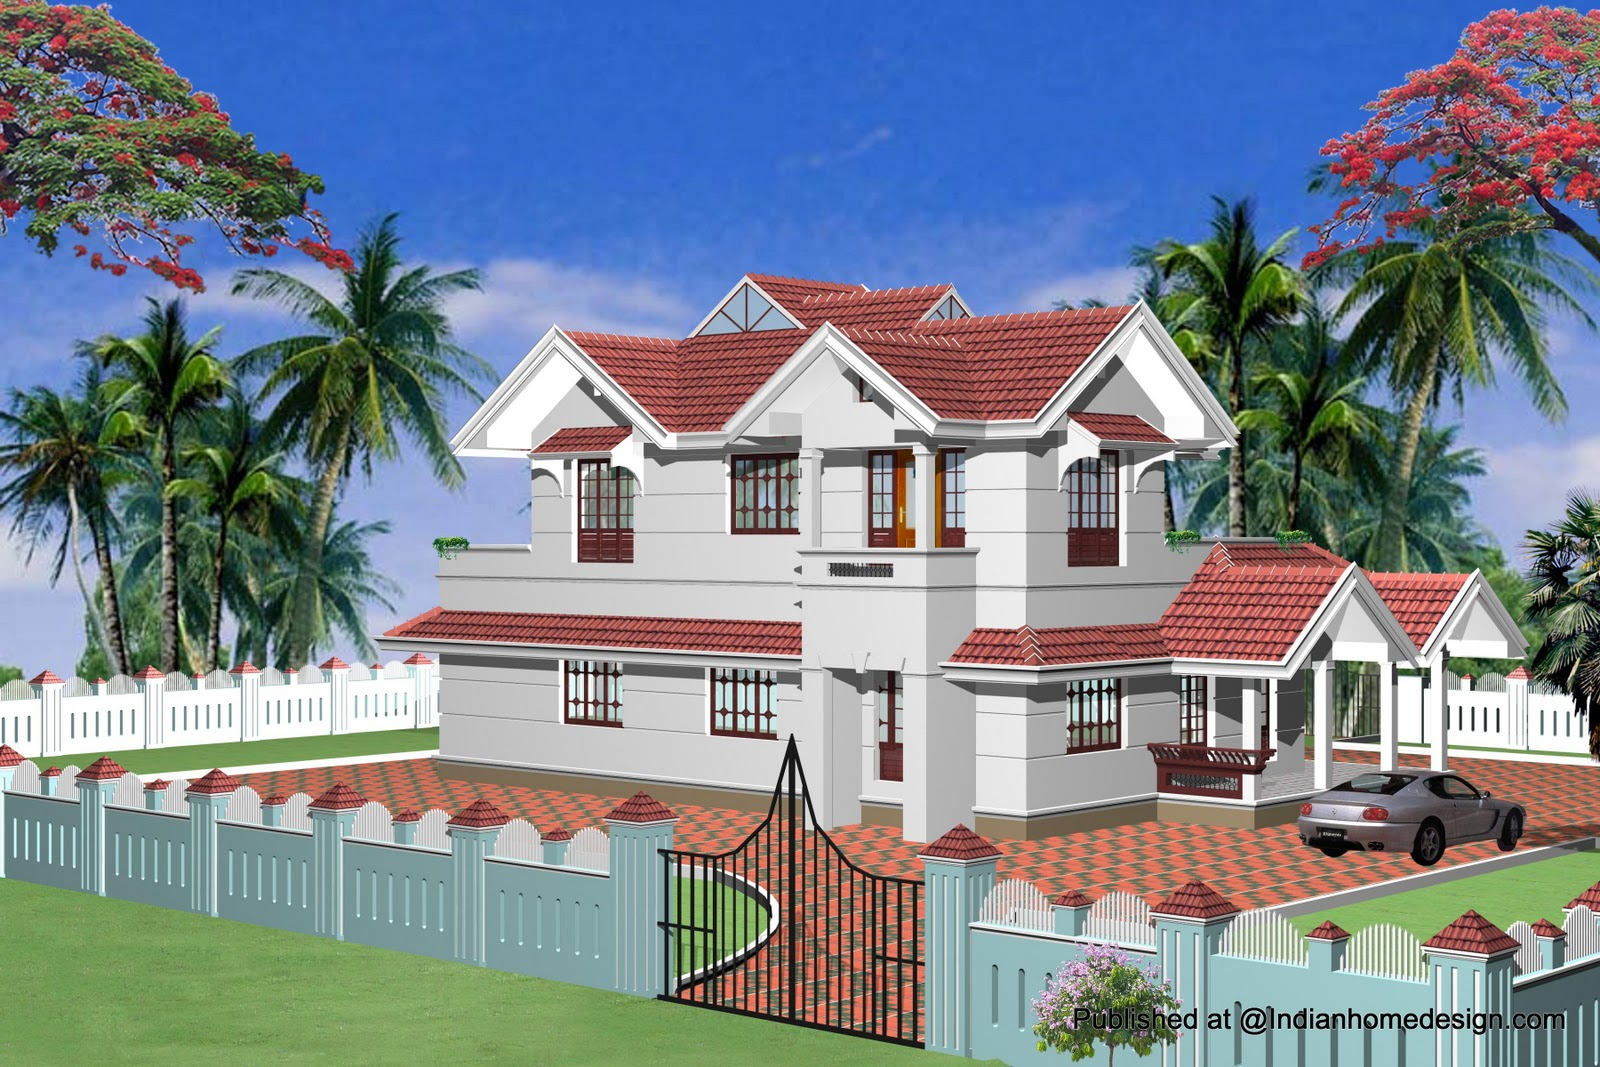 Architectural house plans india omahdesigns net for Home architecture design india